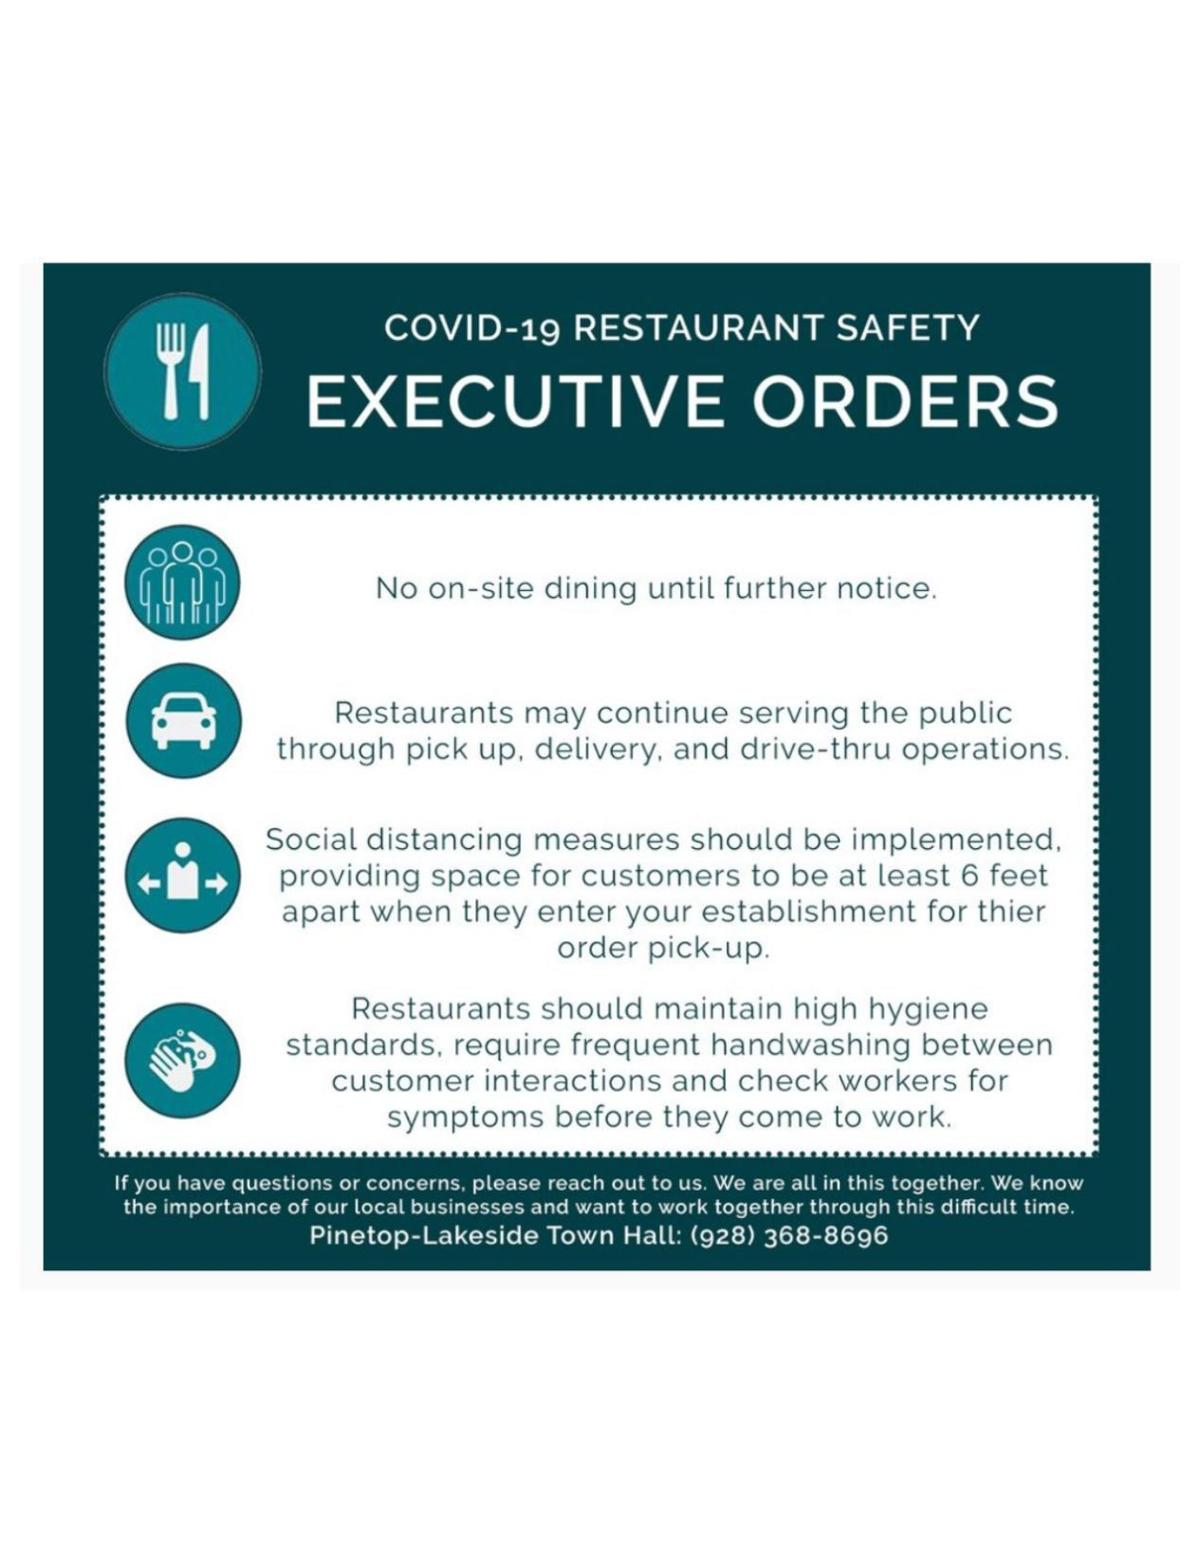 Restaurant Guidelines for COVID-19